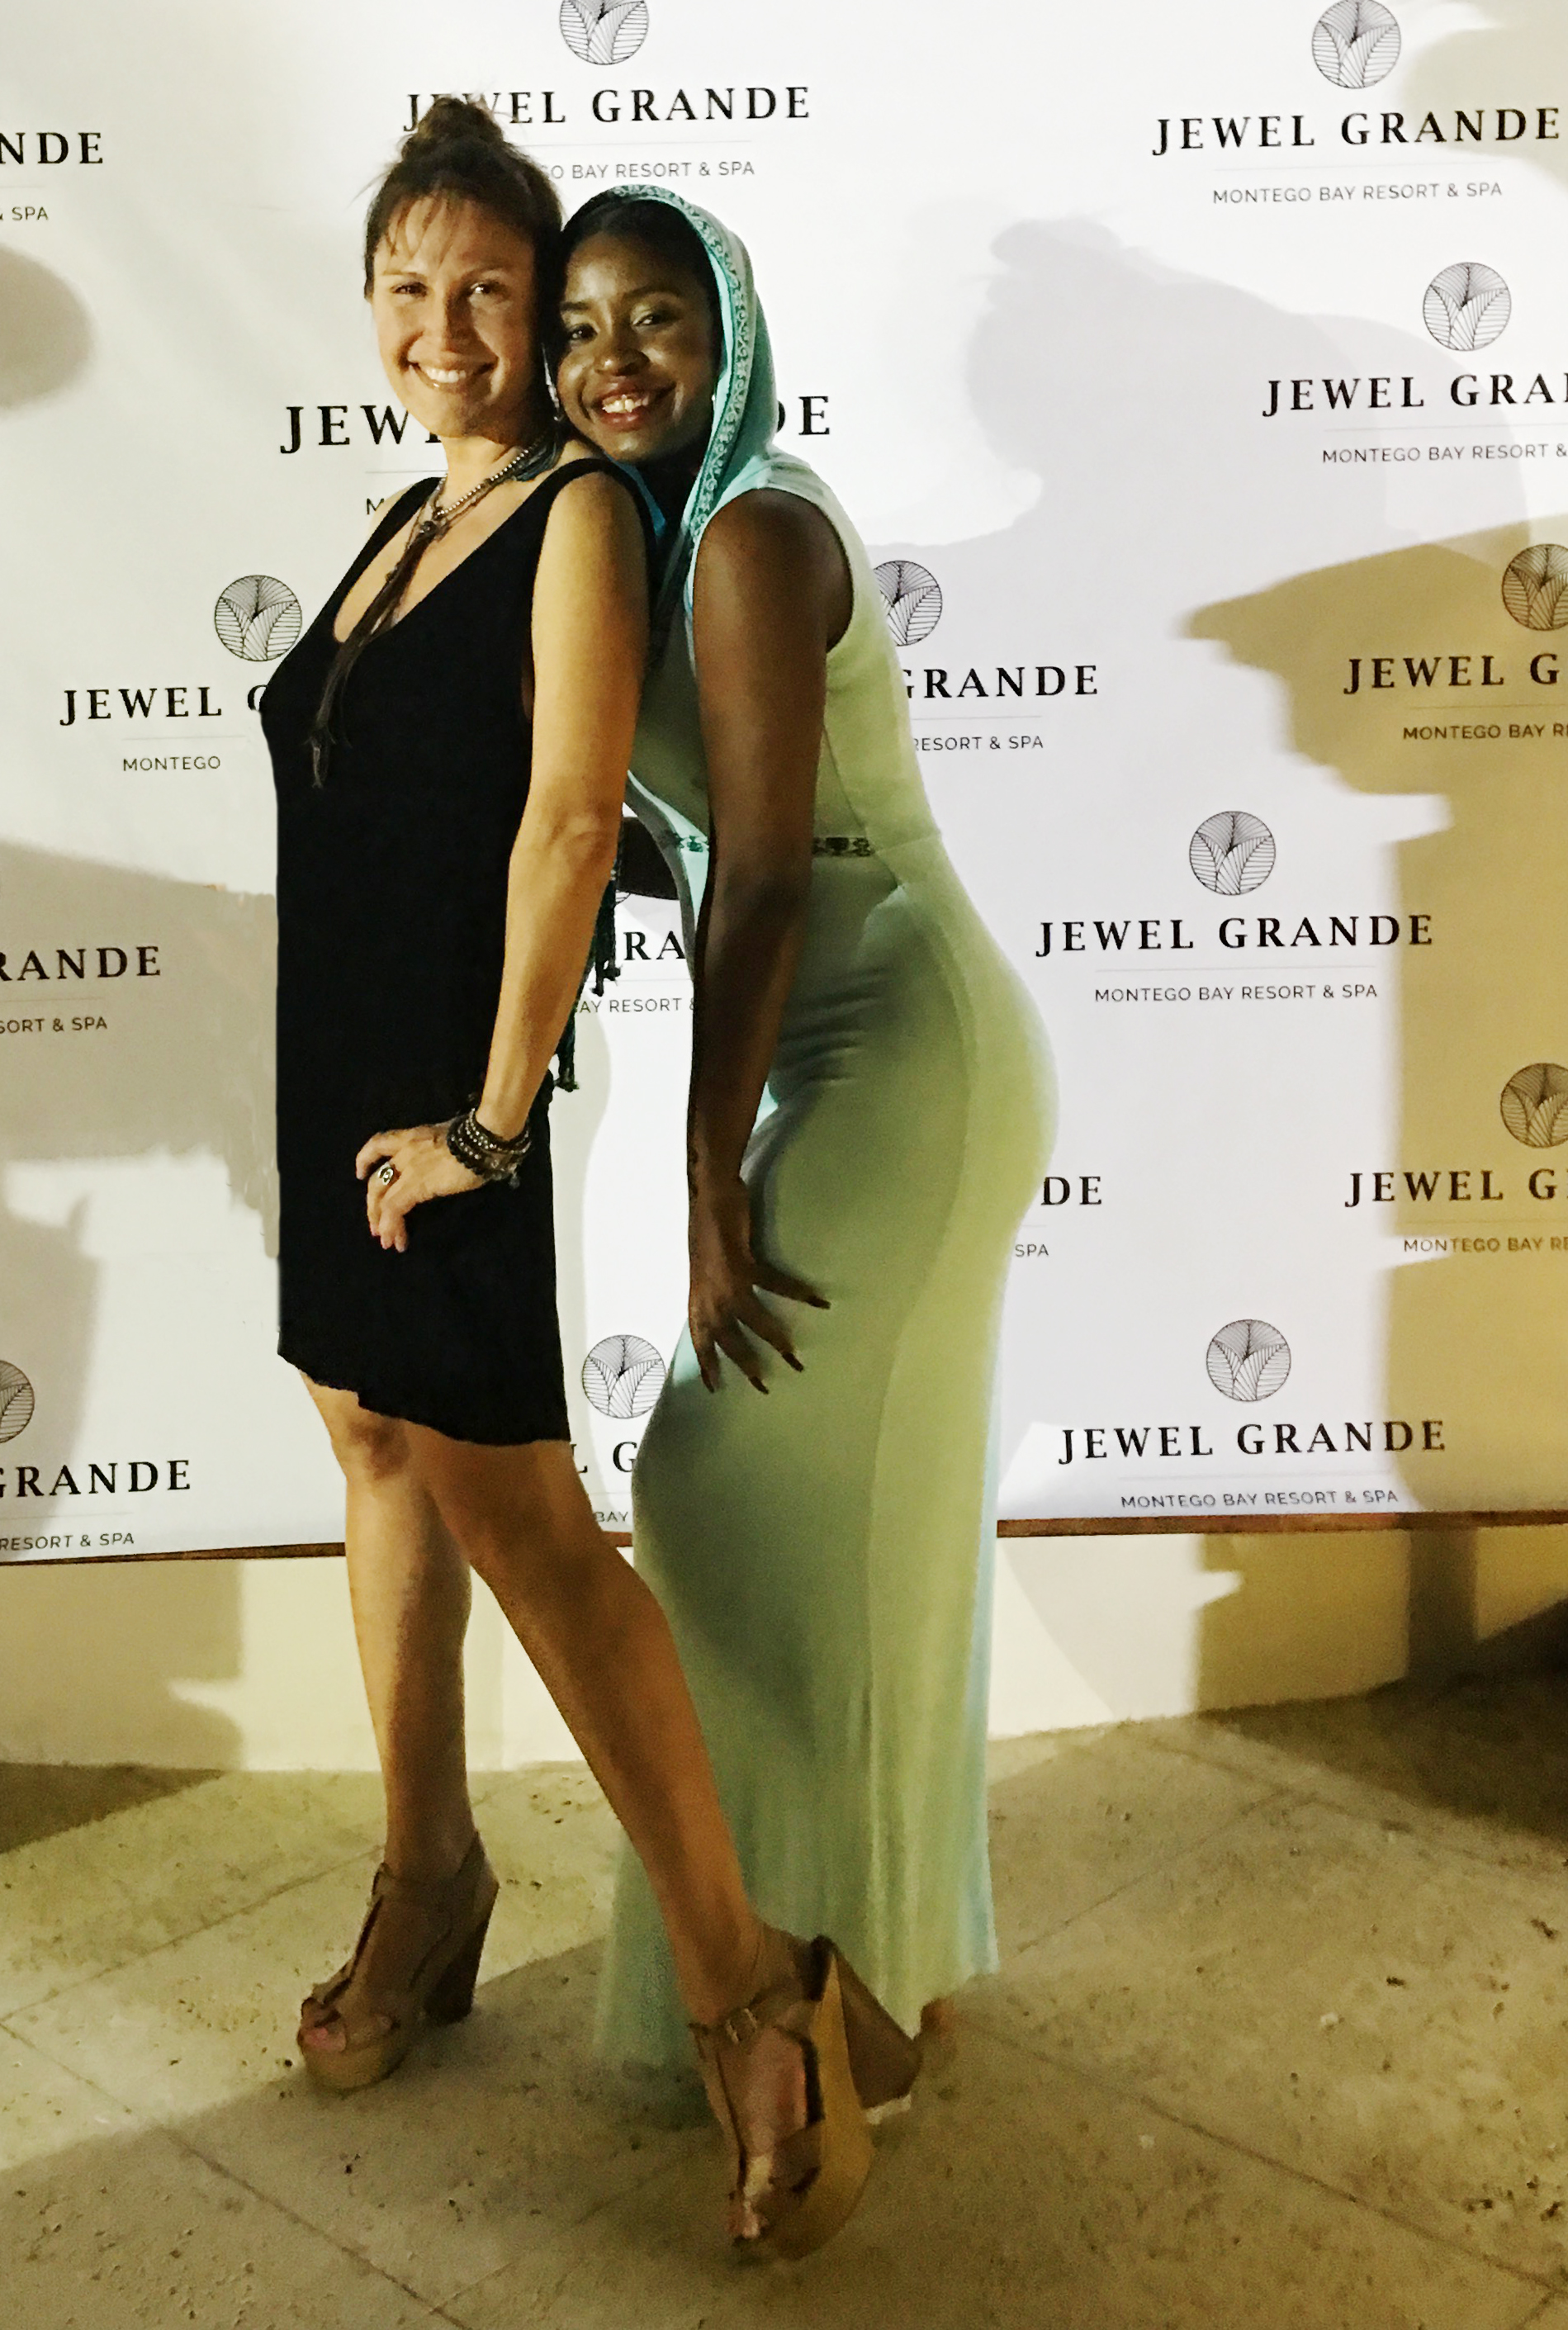 Sita Thompson SITA Couture Fashion Show Jewel Grande Hotel Montiego Bay Jaimacia